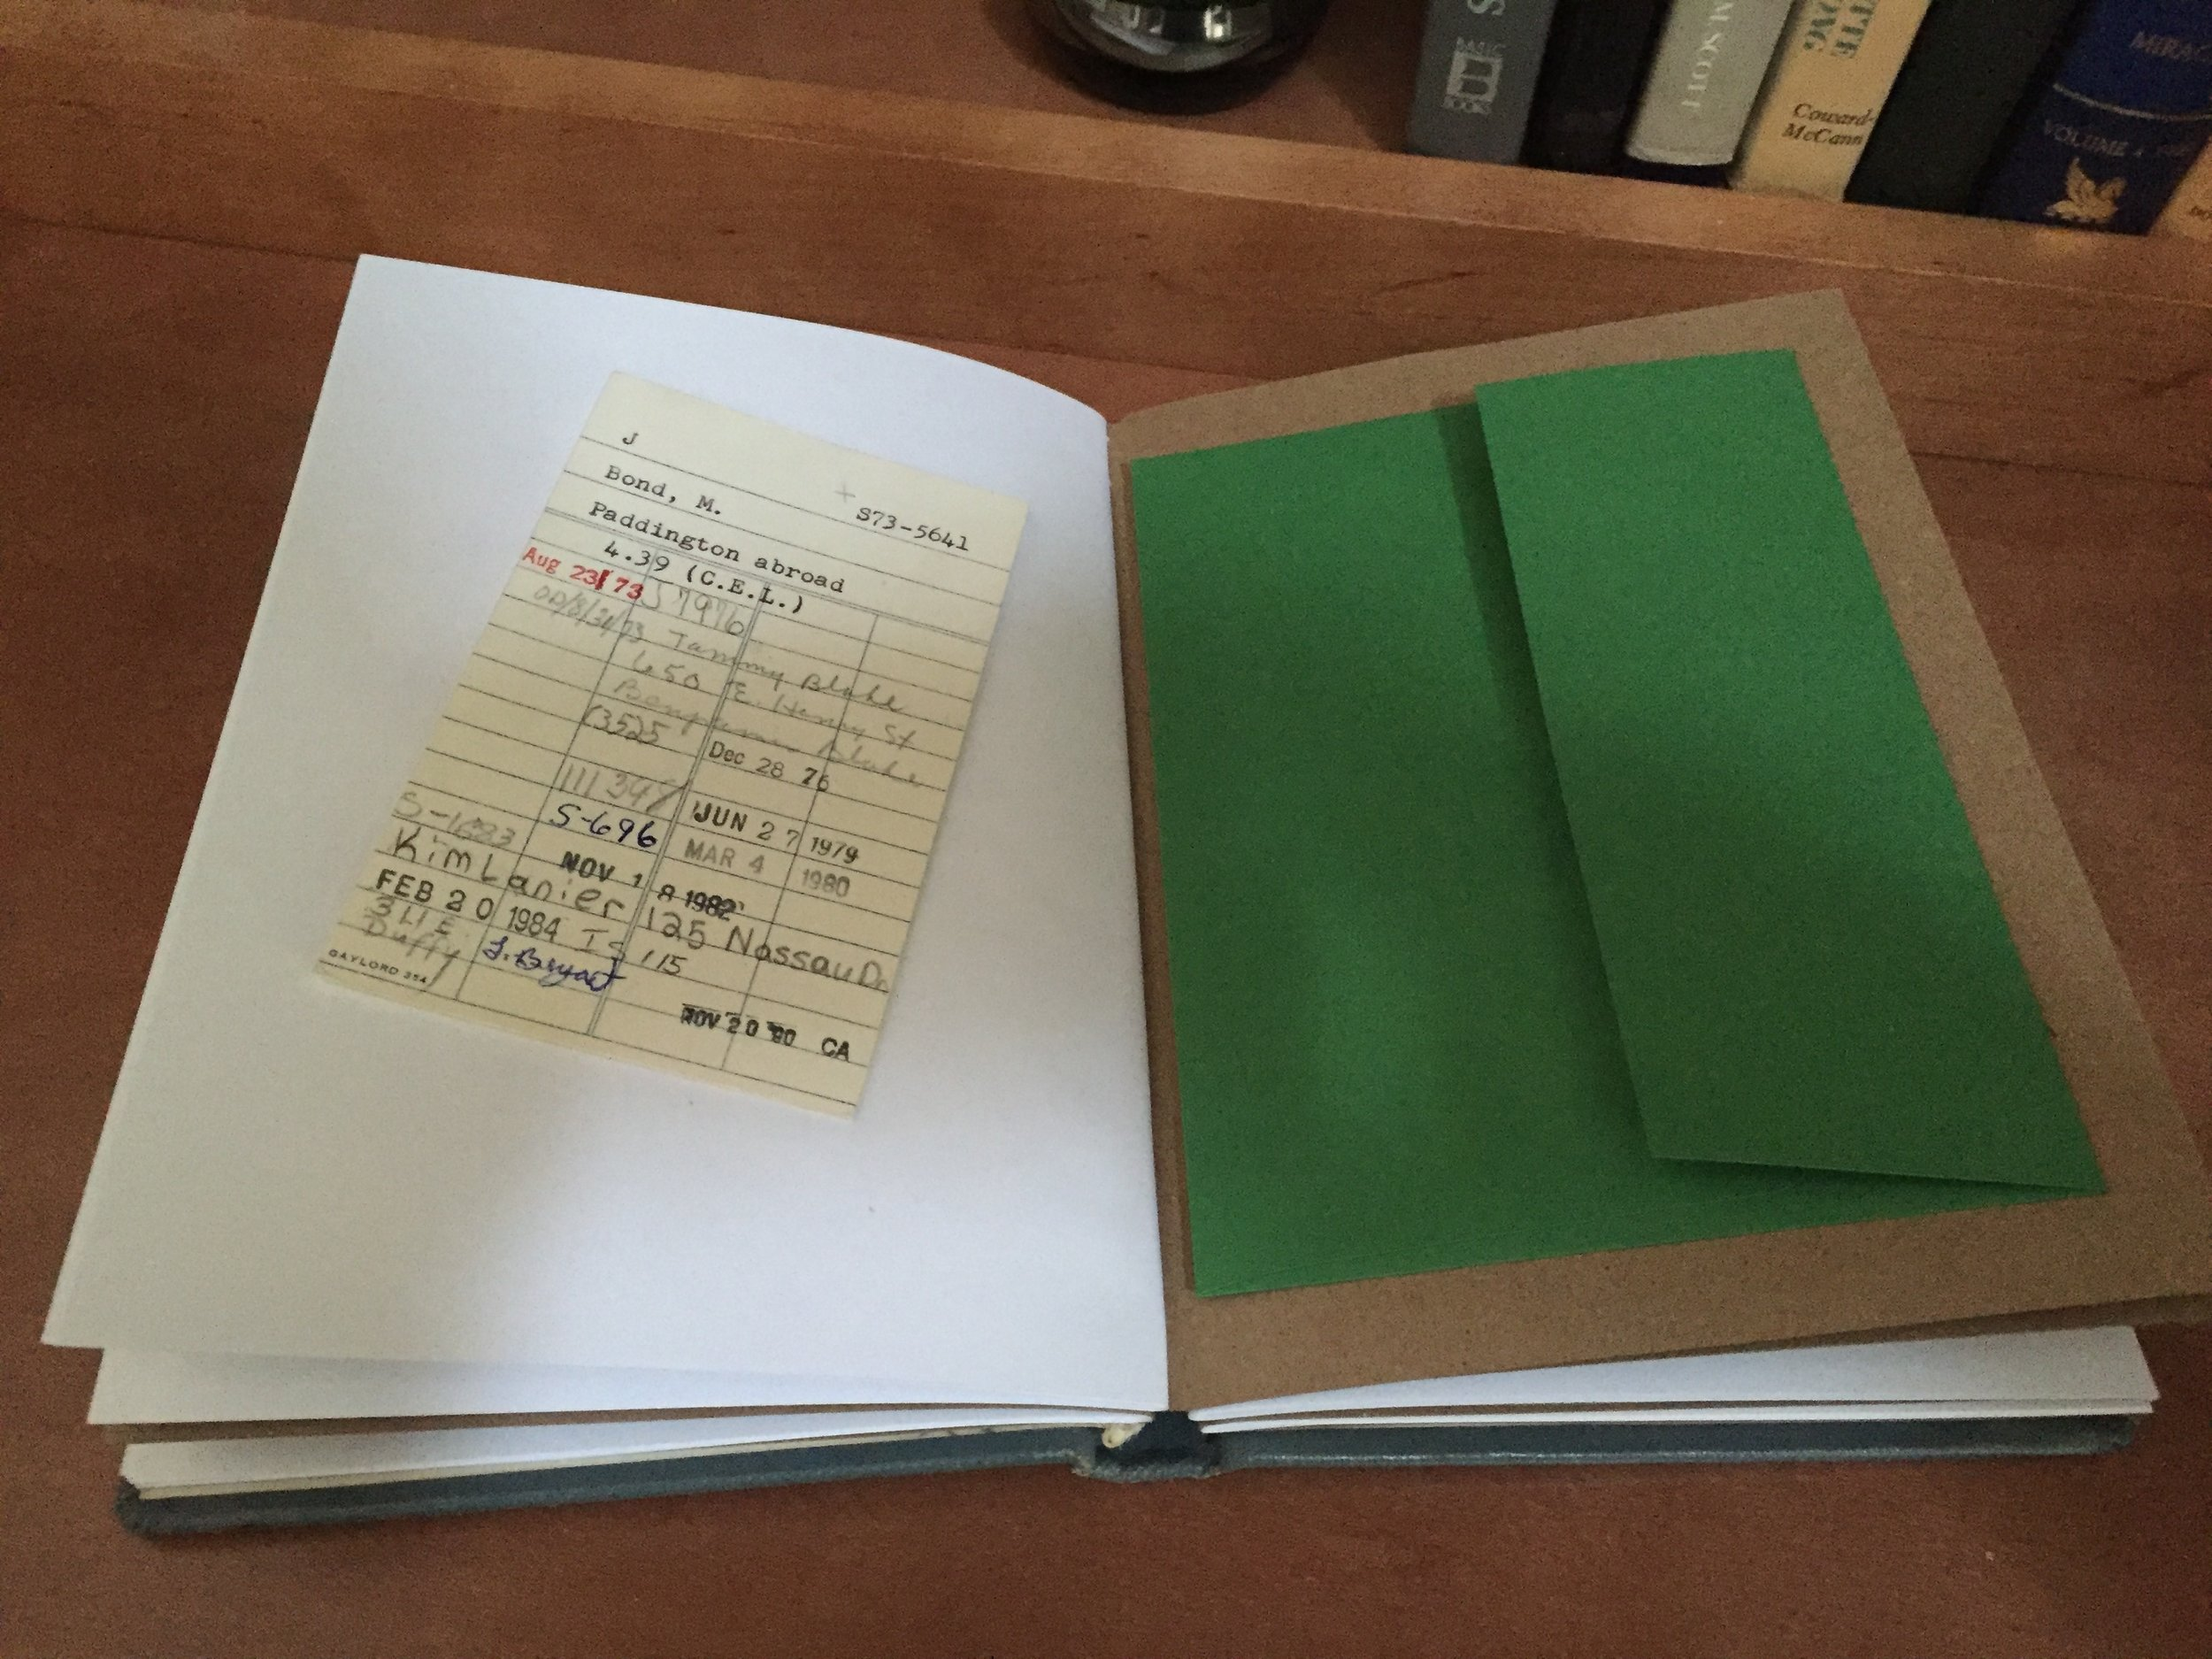 """Paddington Abroad comes with the original Library's """"Date Due"""" card. Premium stock blank white paper secured to 65-lb. Kraft paper make up the signature pages. Premium stock green envelopes are used at the end of the signature blocks for storage."""